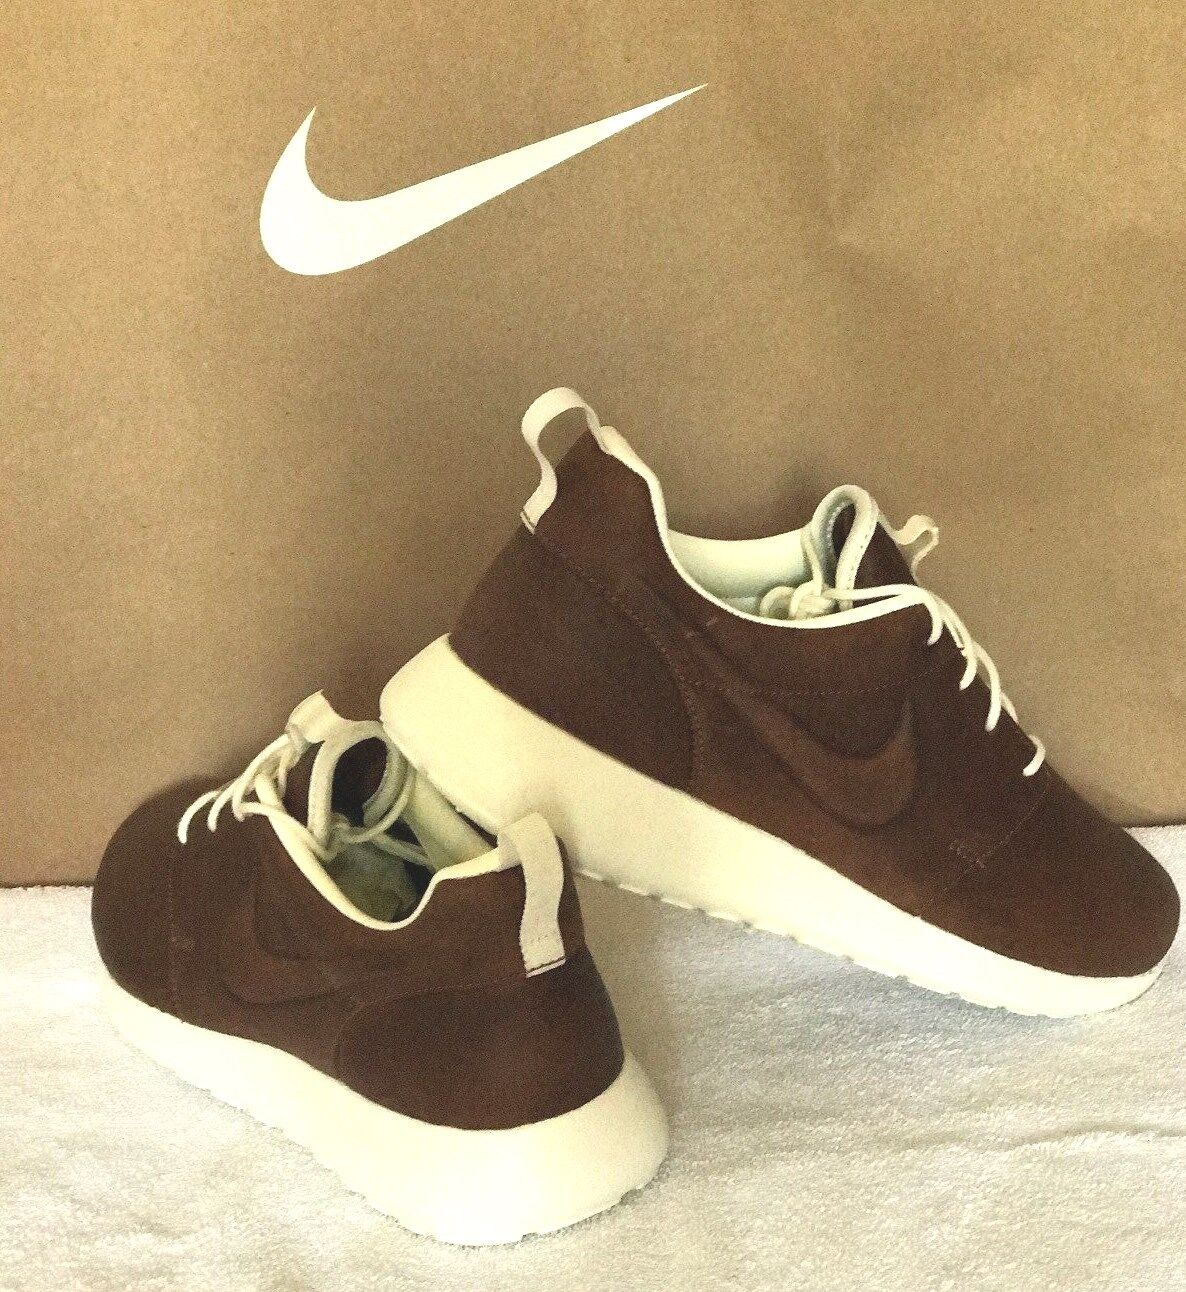 cheap for discount e2d28 29afc Nike Roshe Running Shoe ID Premium Leather Brown - White Size 6.5   eBay